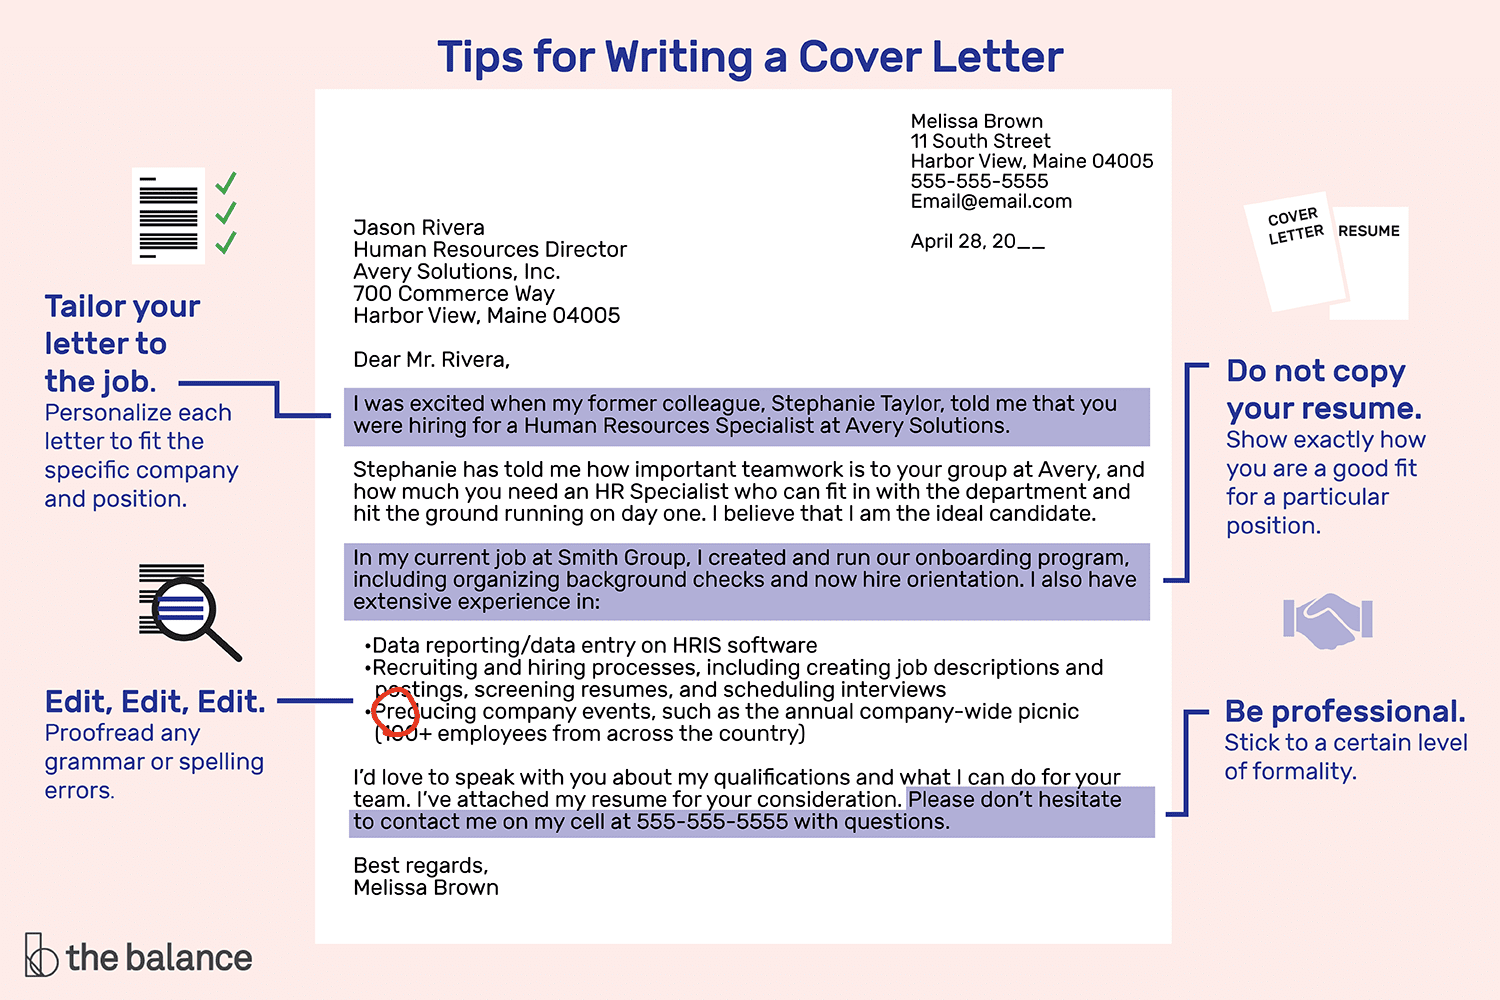 tips for writing a job application letter - Jobs That Don T Require A Resume